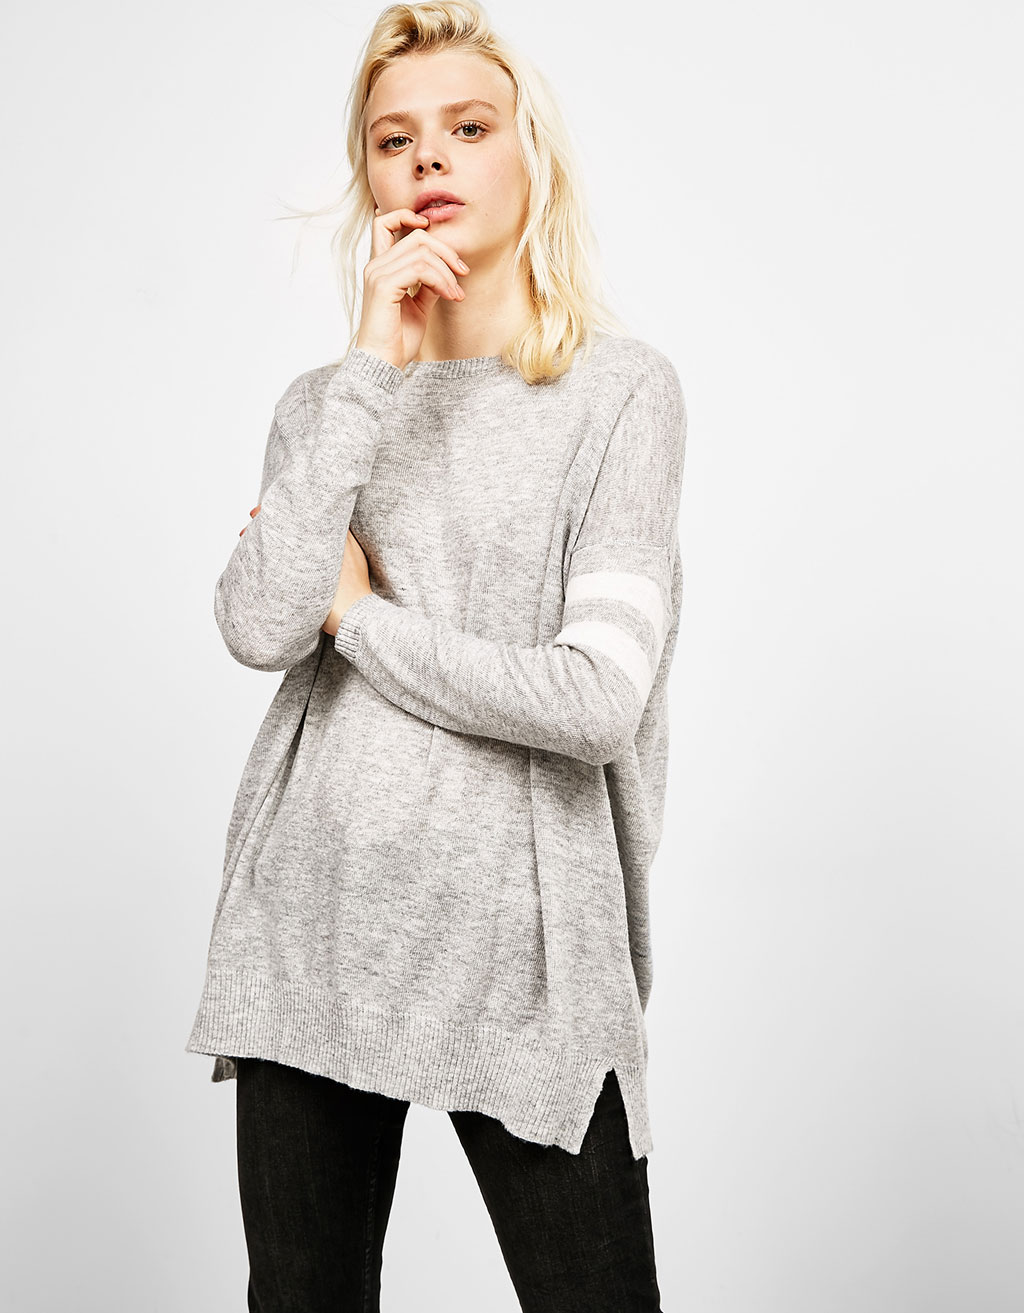 Oversized jumper with striped sleeves